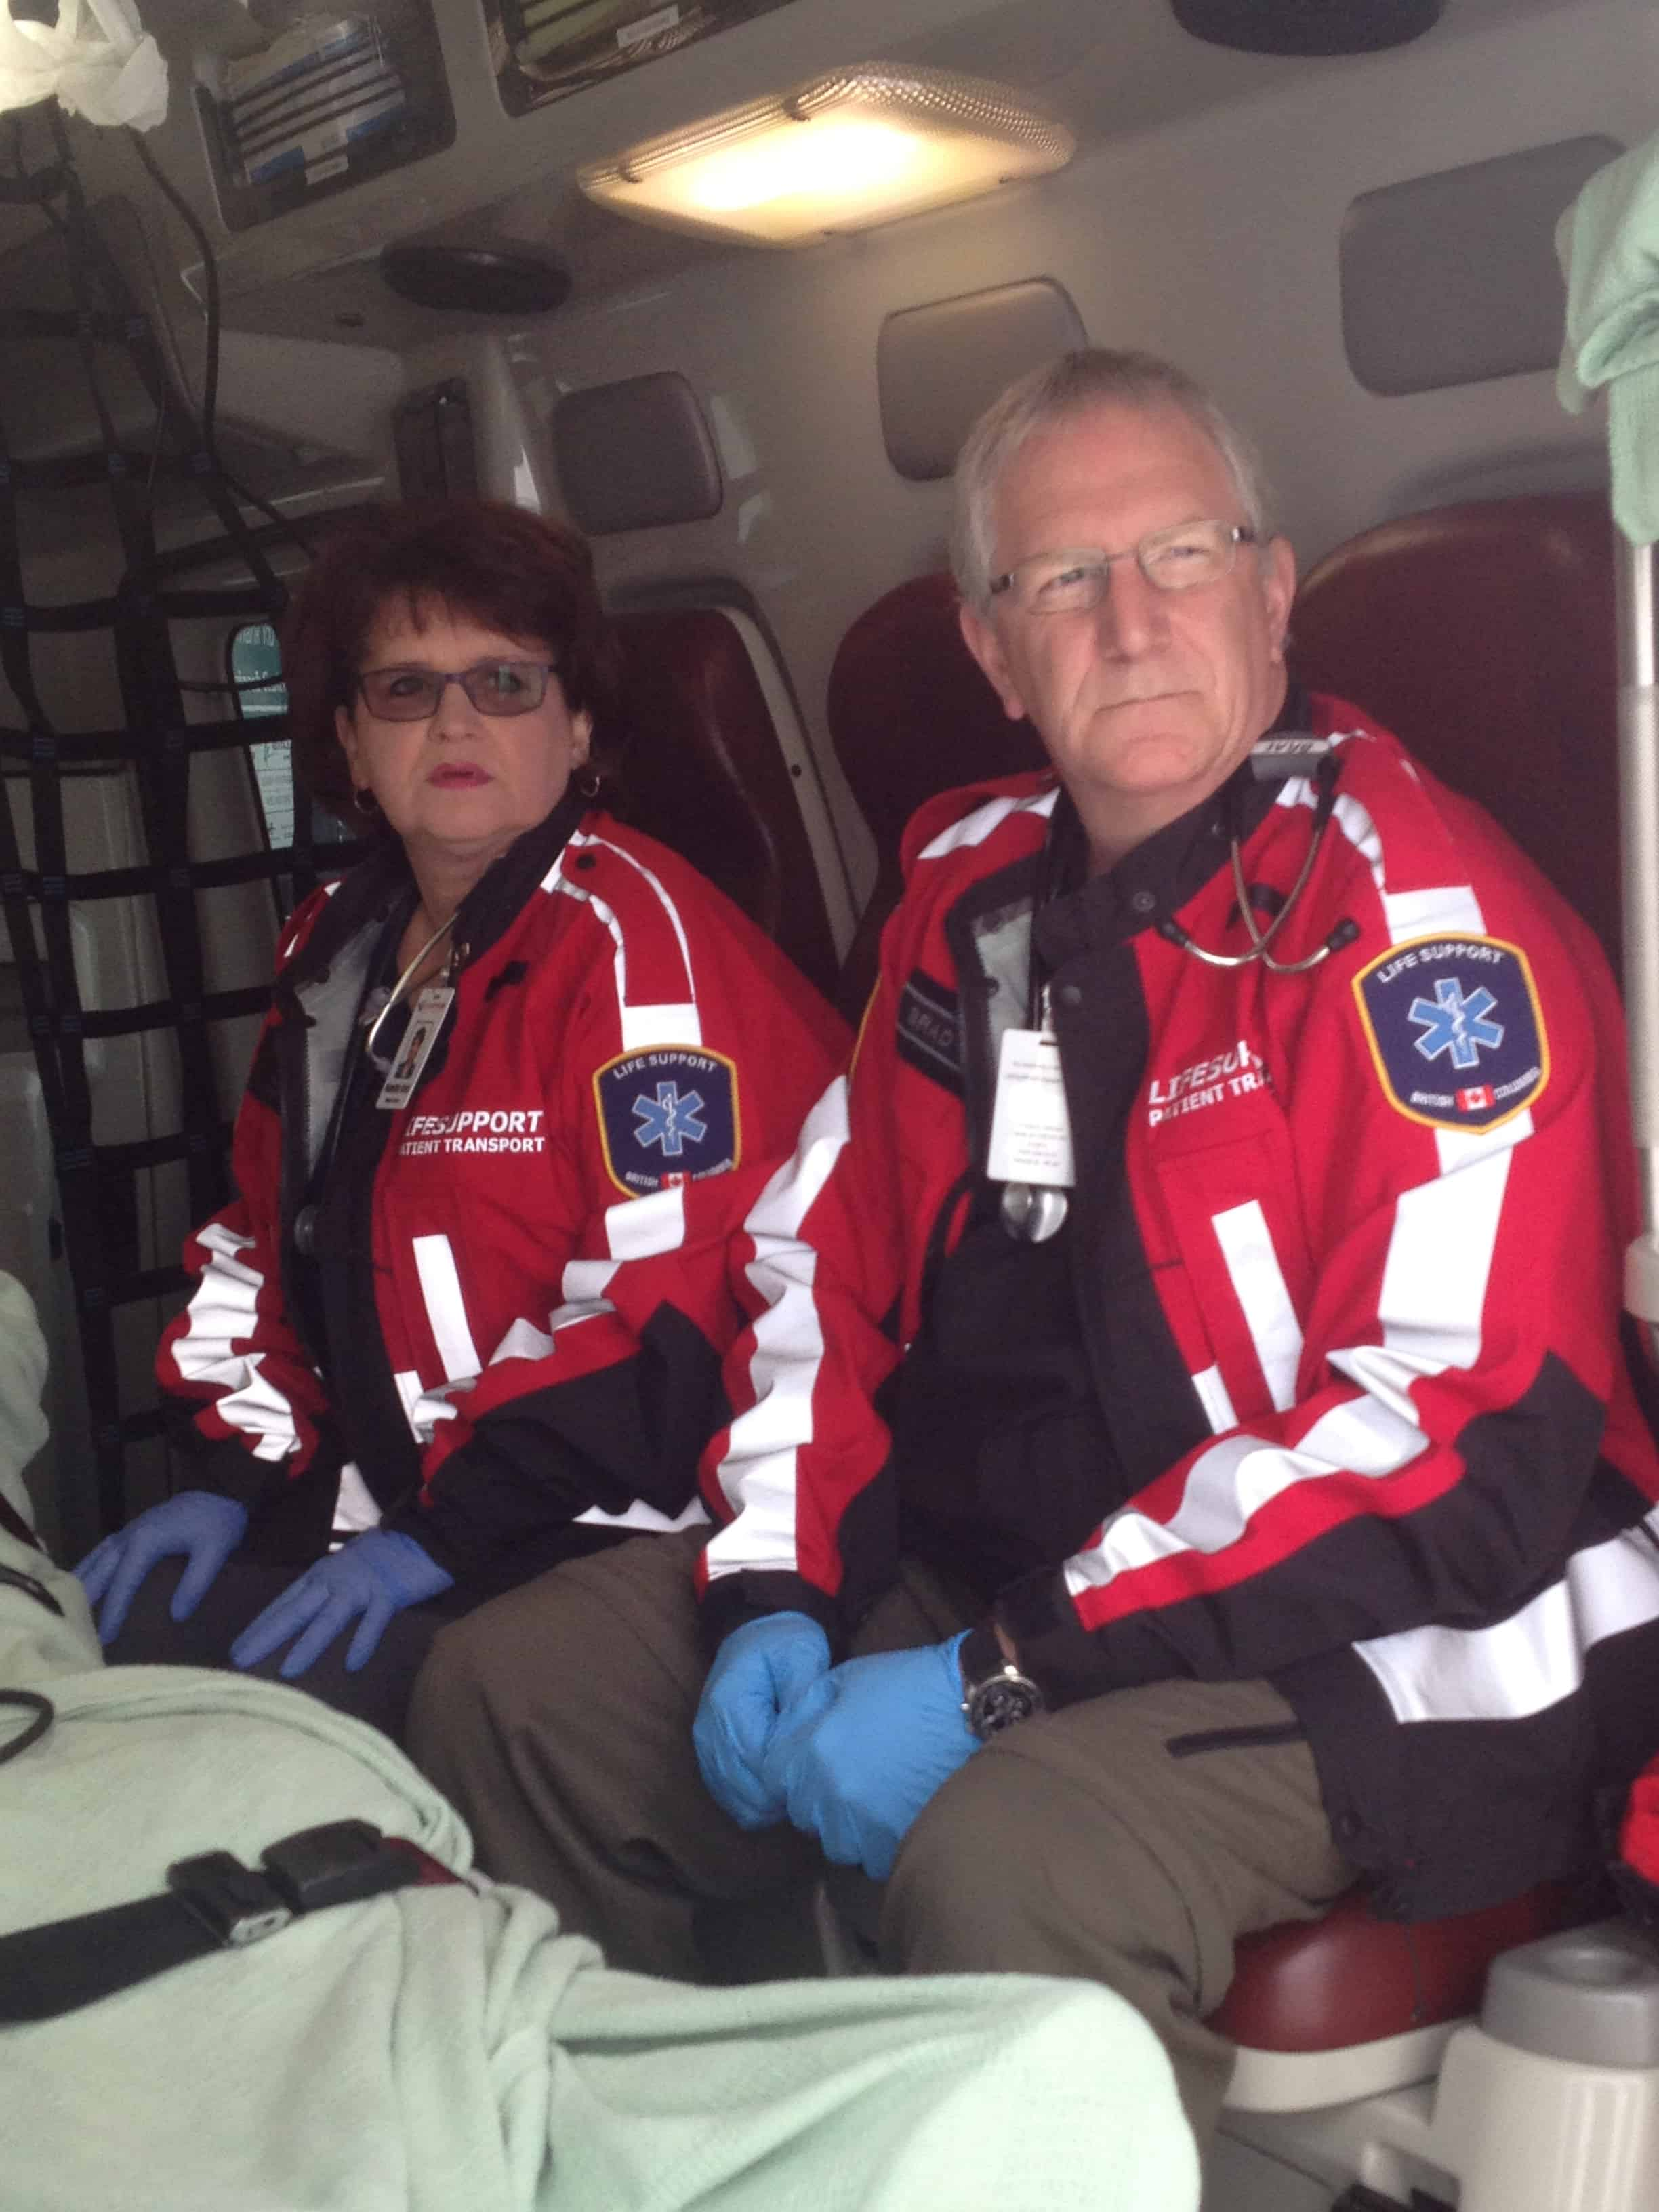 Male and female critical care transport staff